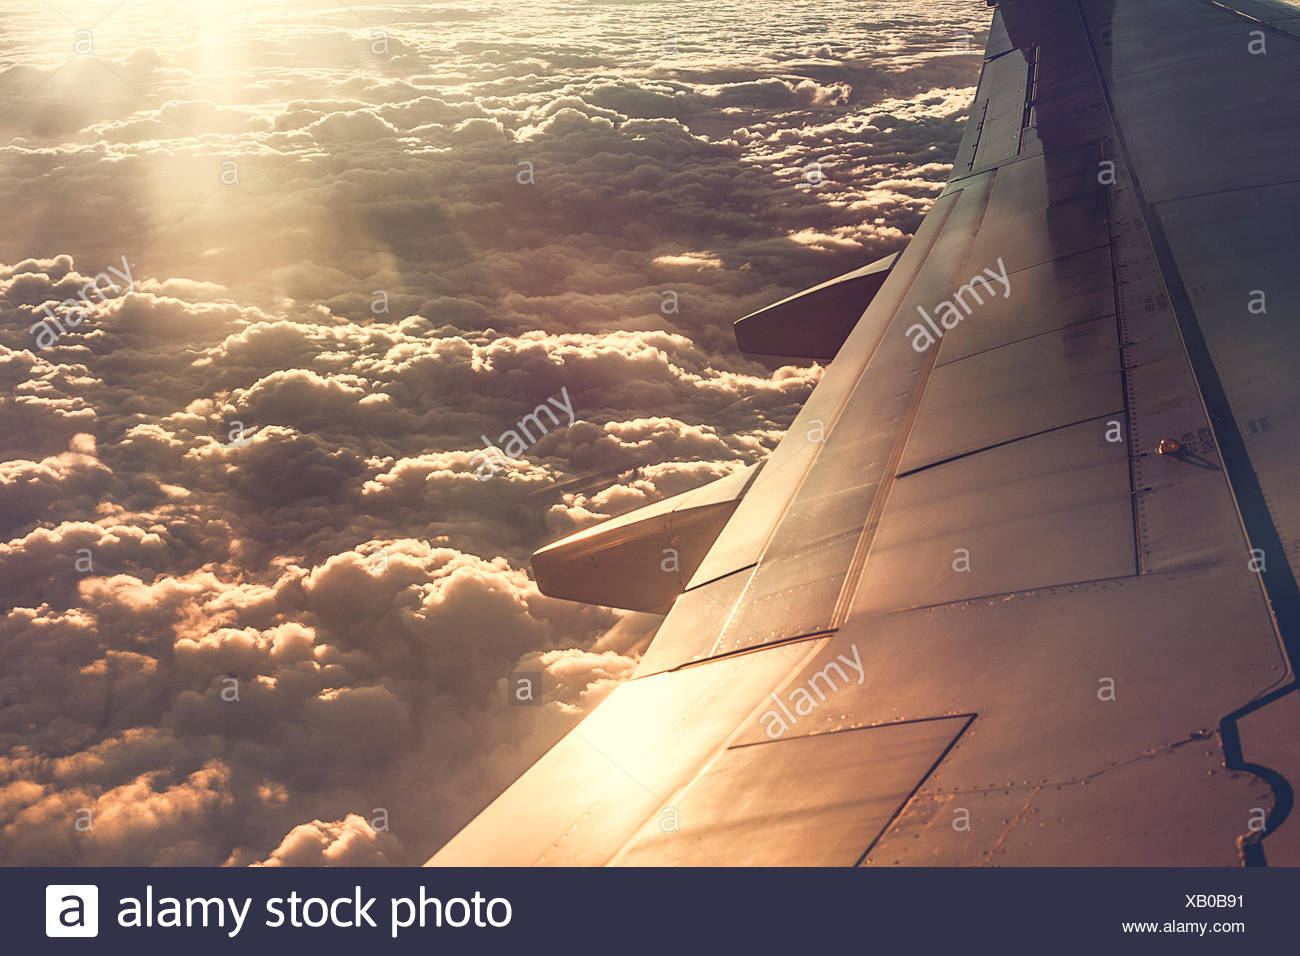 View of clouds, taken from aeroplane window - Stock Image